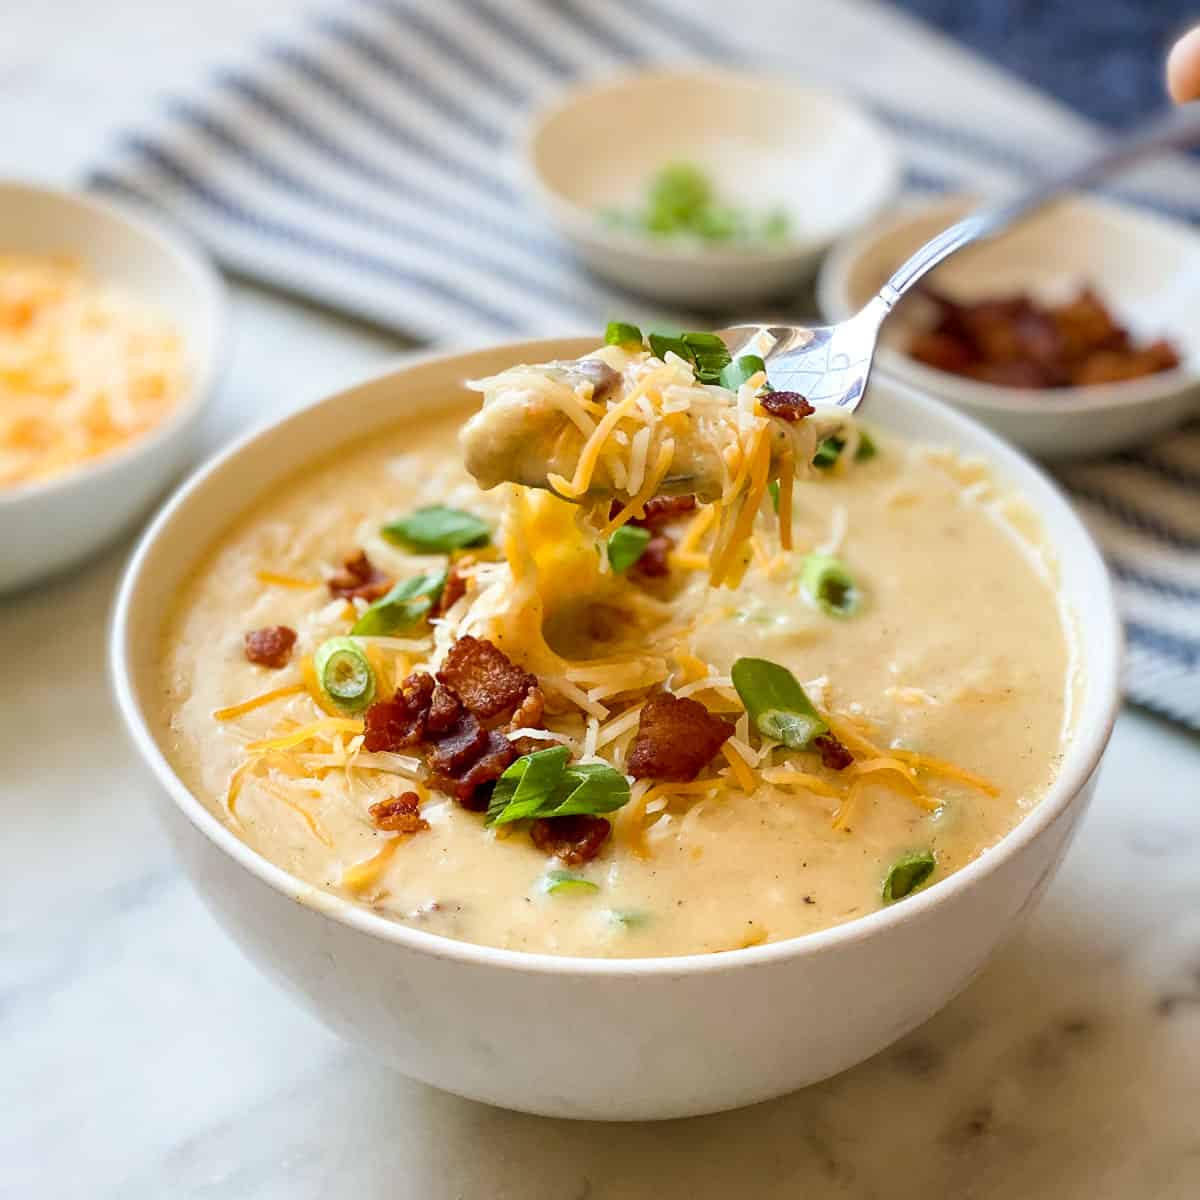 Image showing spoonful of delicious cheesy Potato Soup.